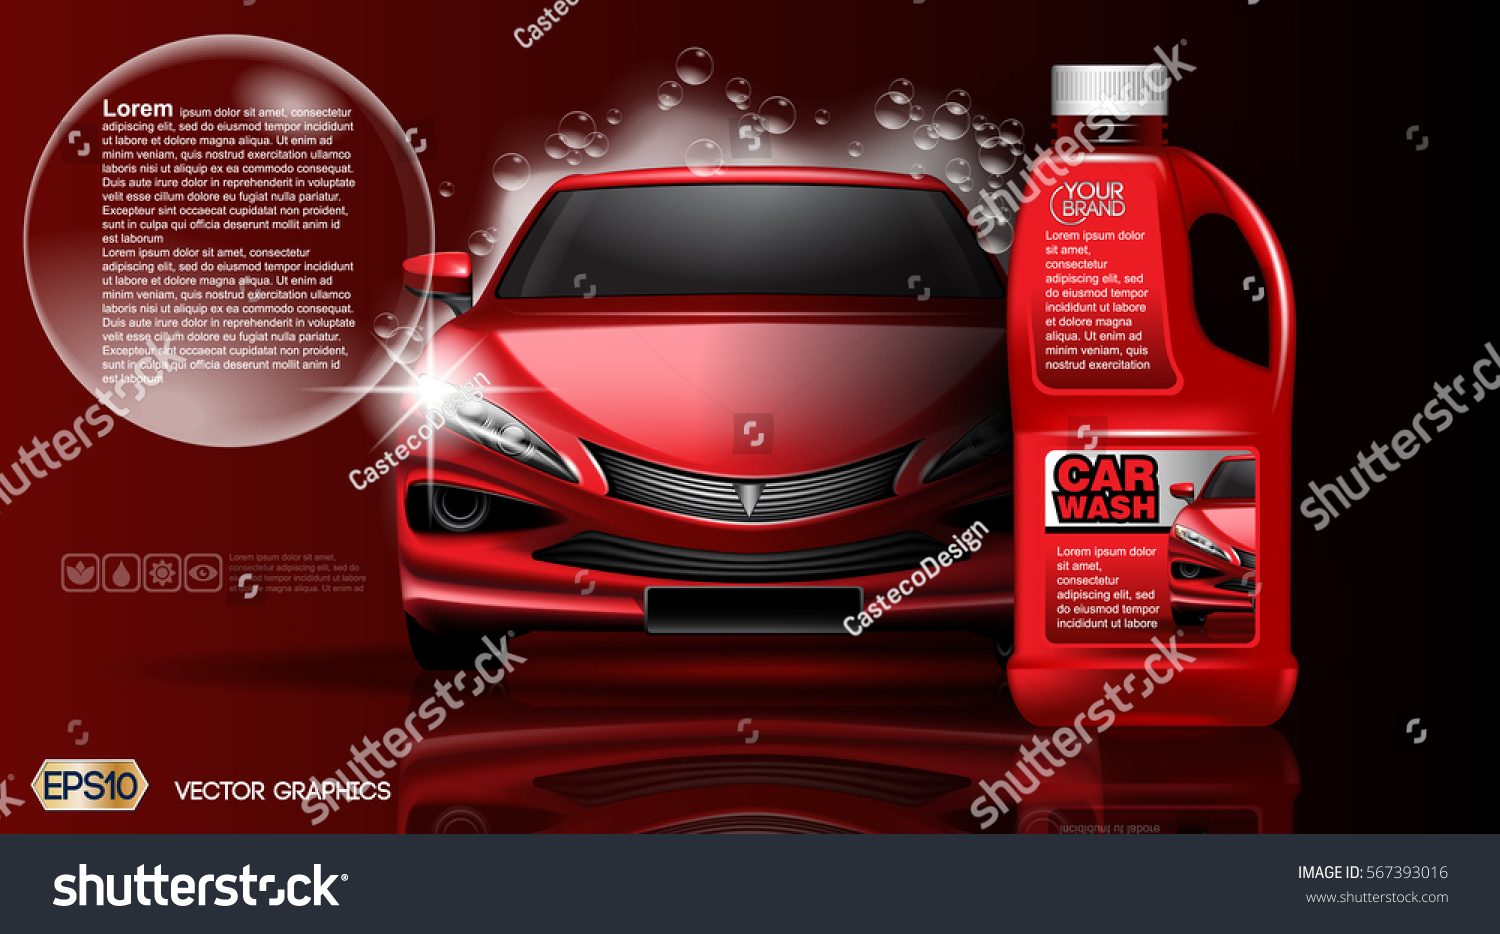 high quality car wash product package mock up ads bottle of carwash soap 3d